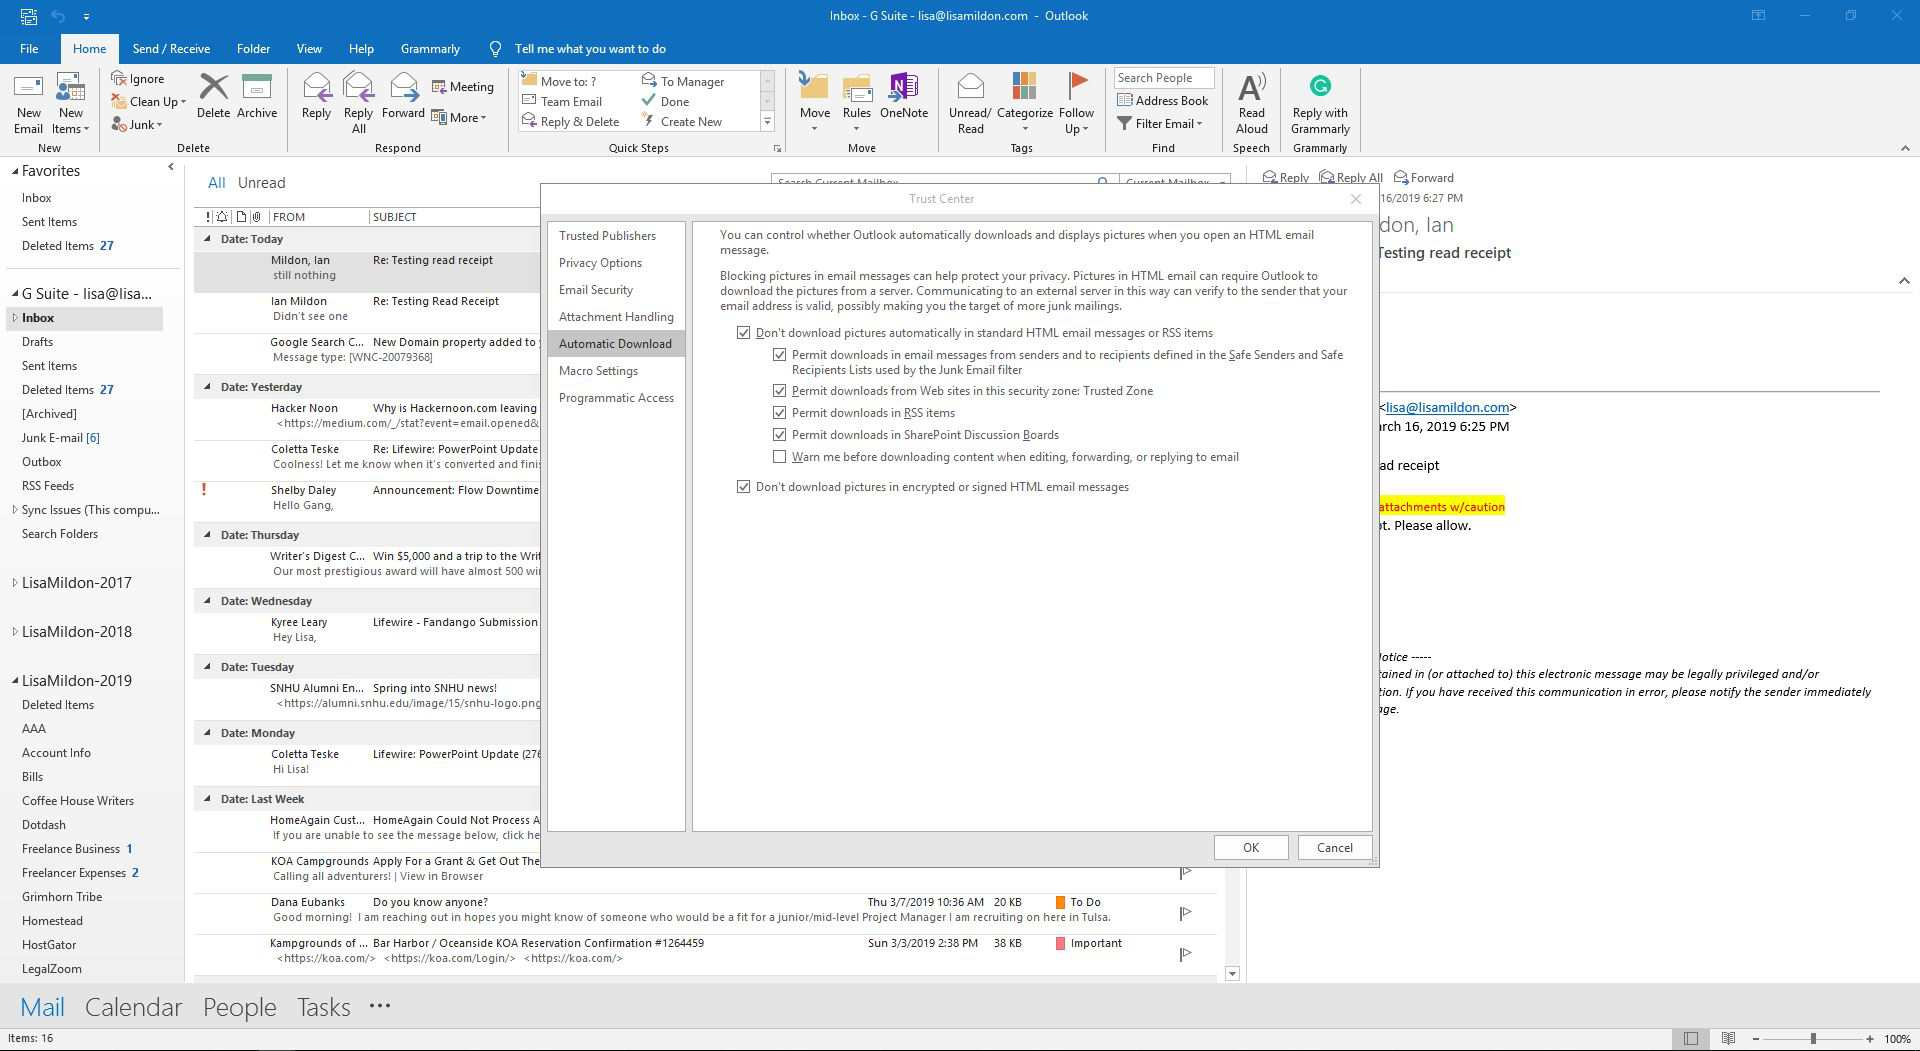 automatic download of pictures in outlook